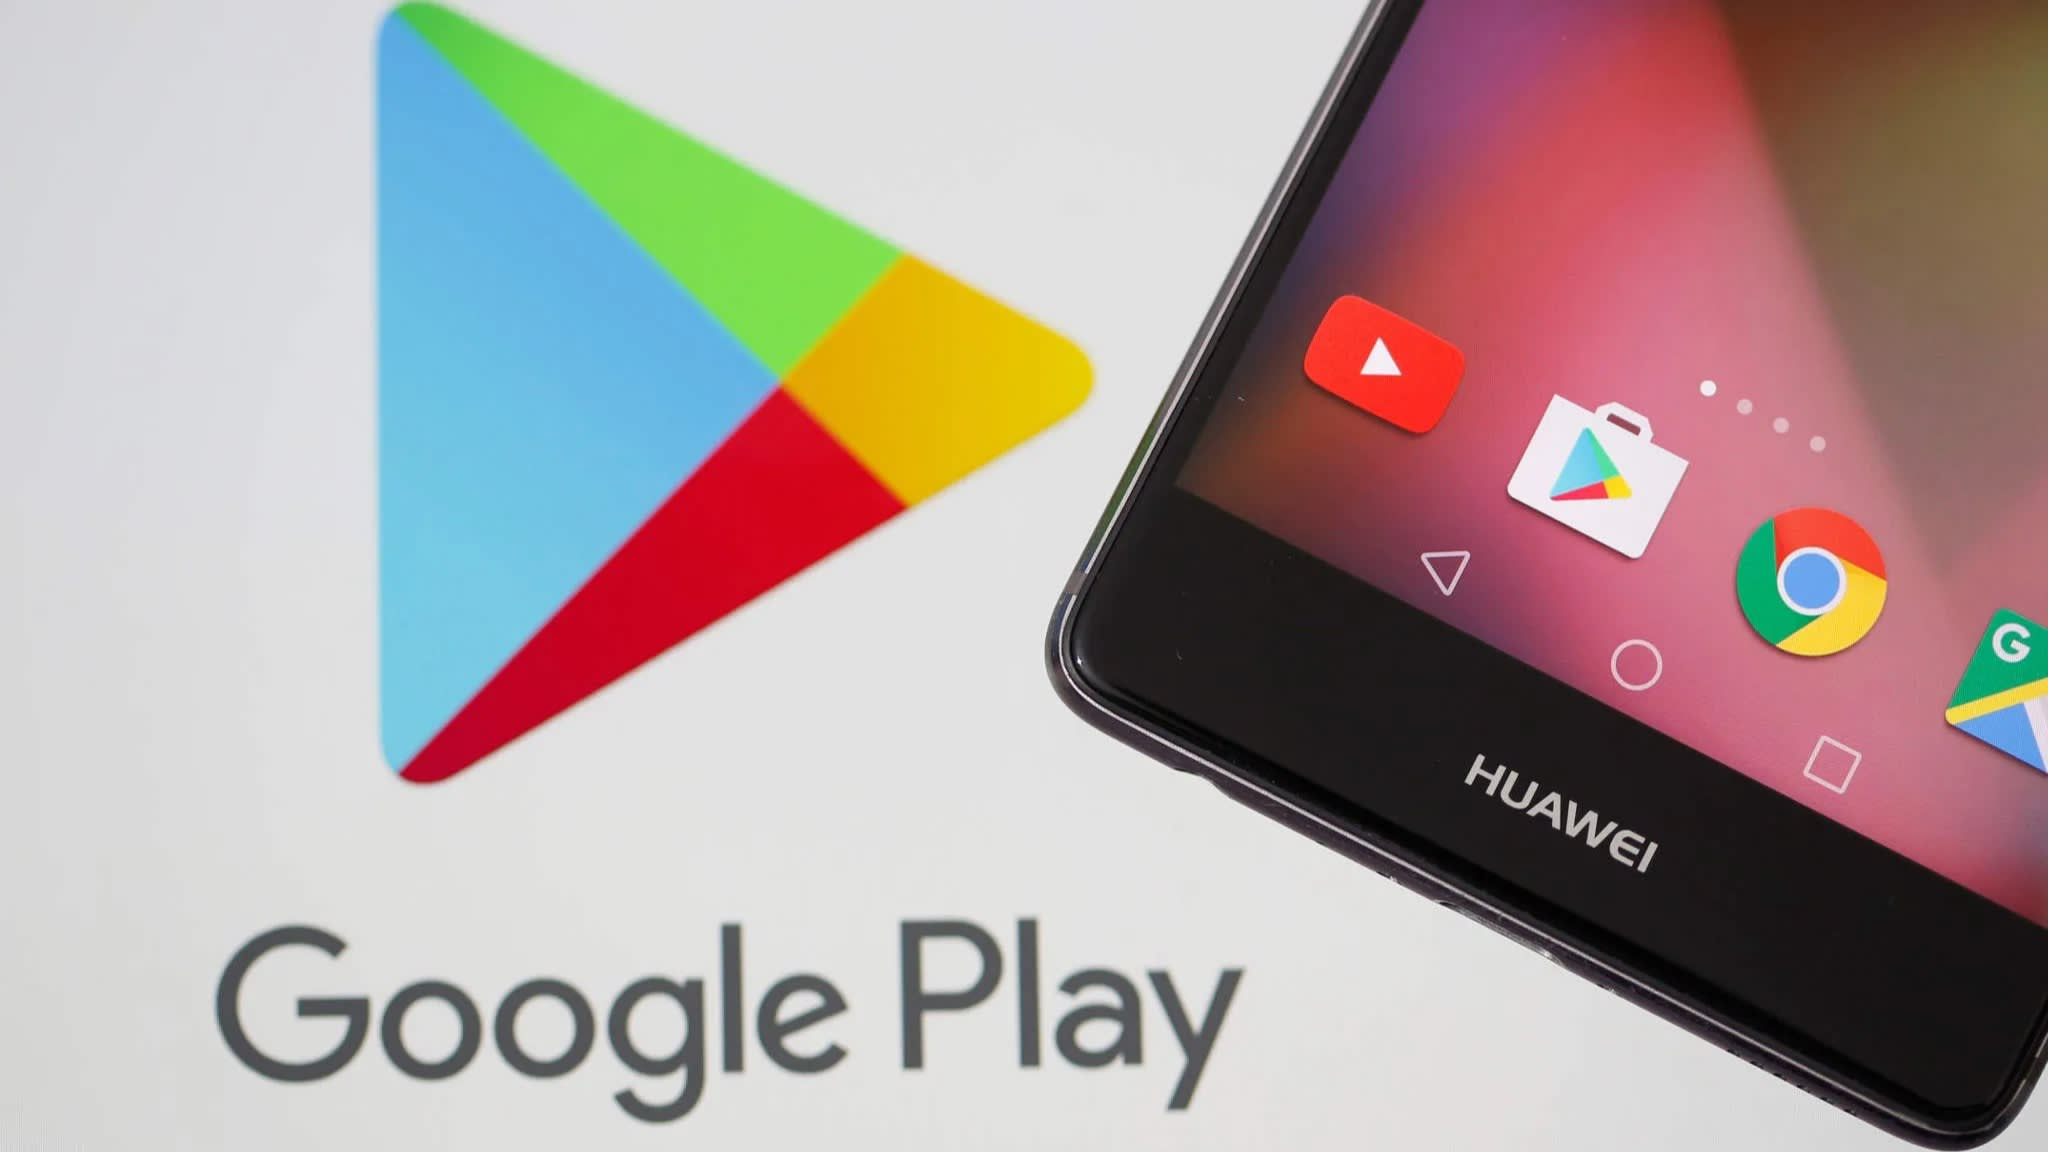 You can still install Google Apps on Huawei Mate 30 but it's risky – here's how